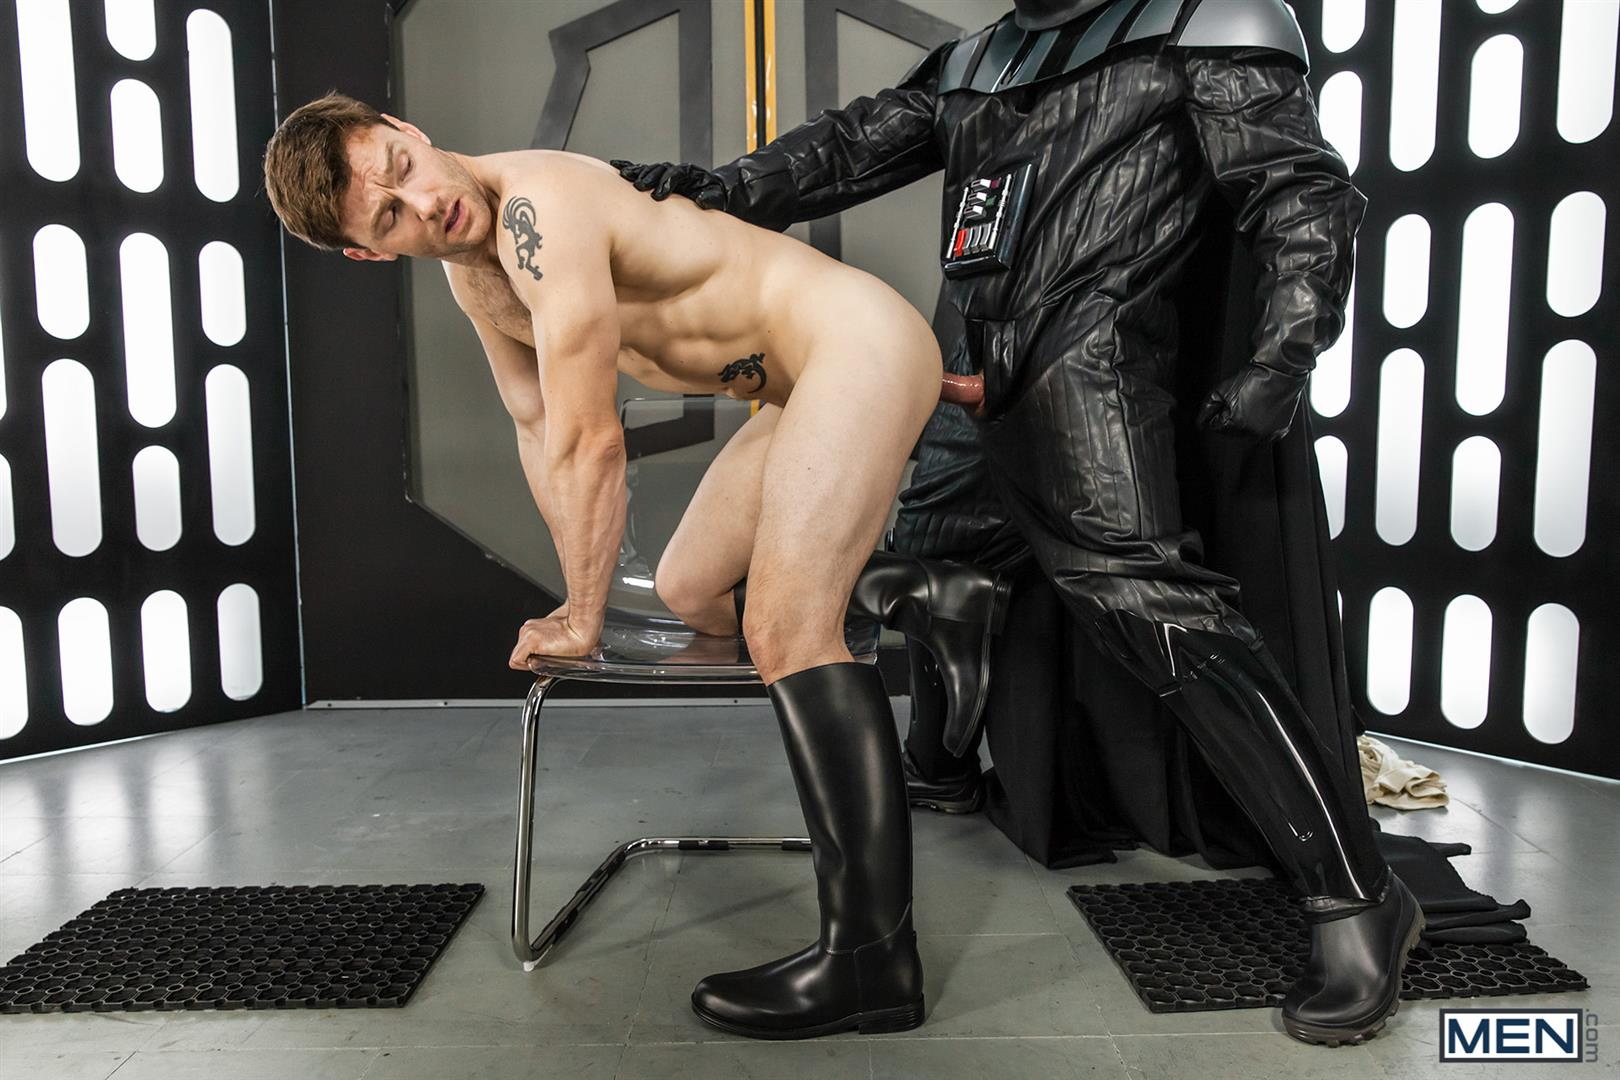 Men-Dennis-West-Gay-Star-Wars-Parody-XXX-Amateur-Gay-Porn-41 Who Knew that Darth Vader Likes To Fuck Man Ass?